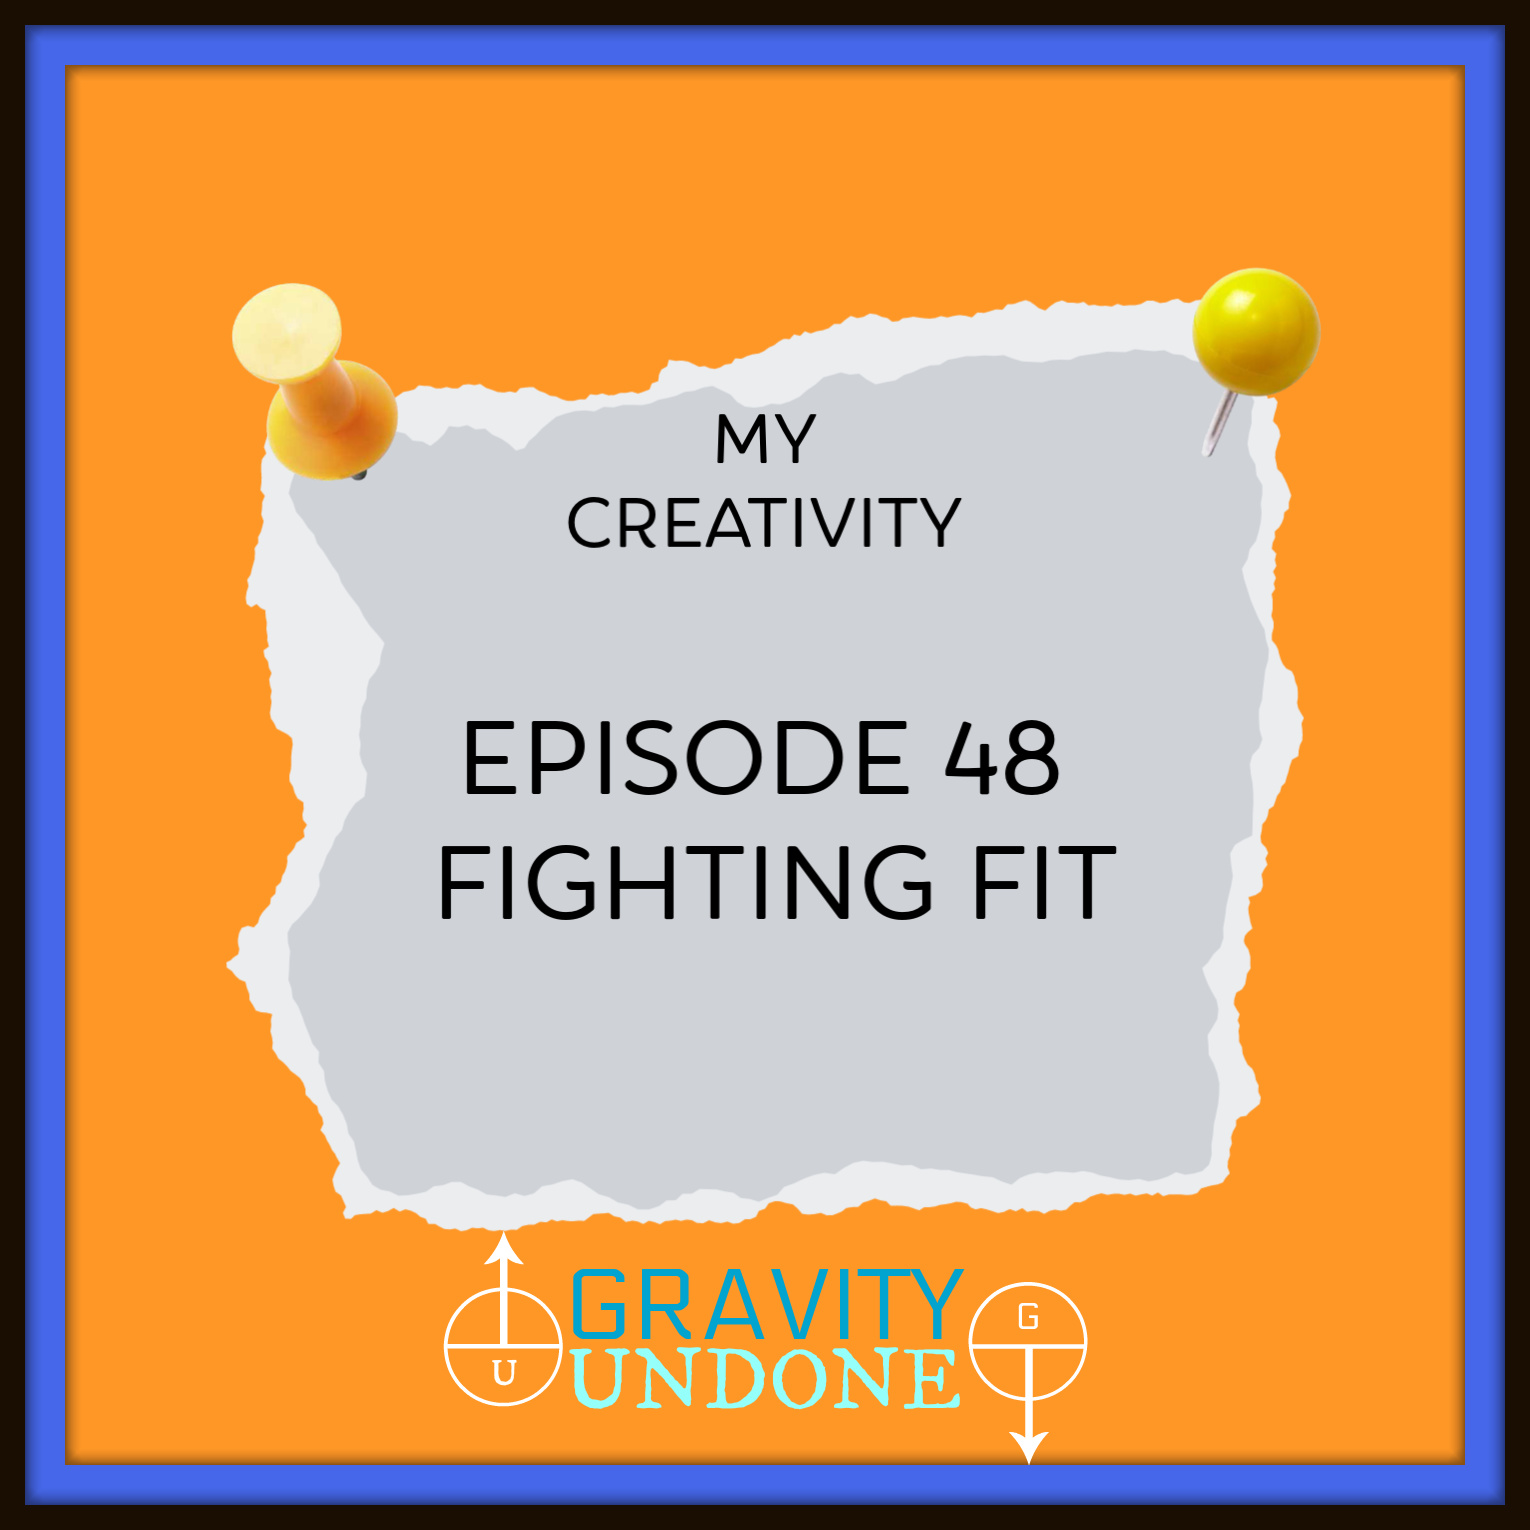 My Creativity Episode 48 Fighting fit